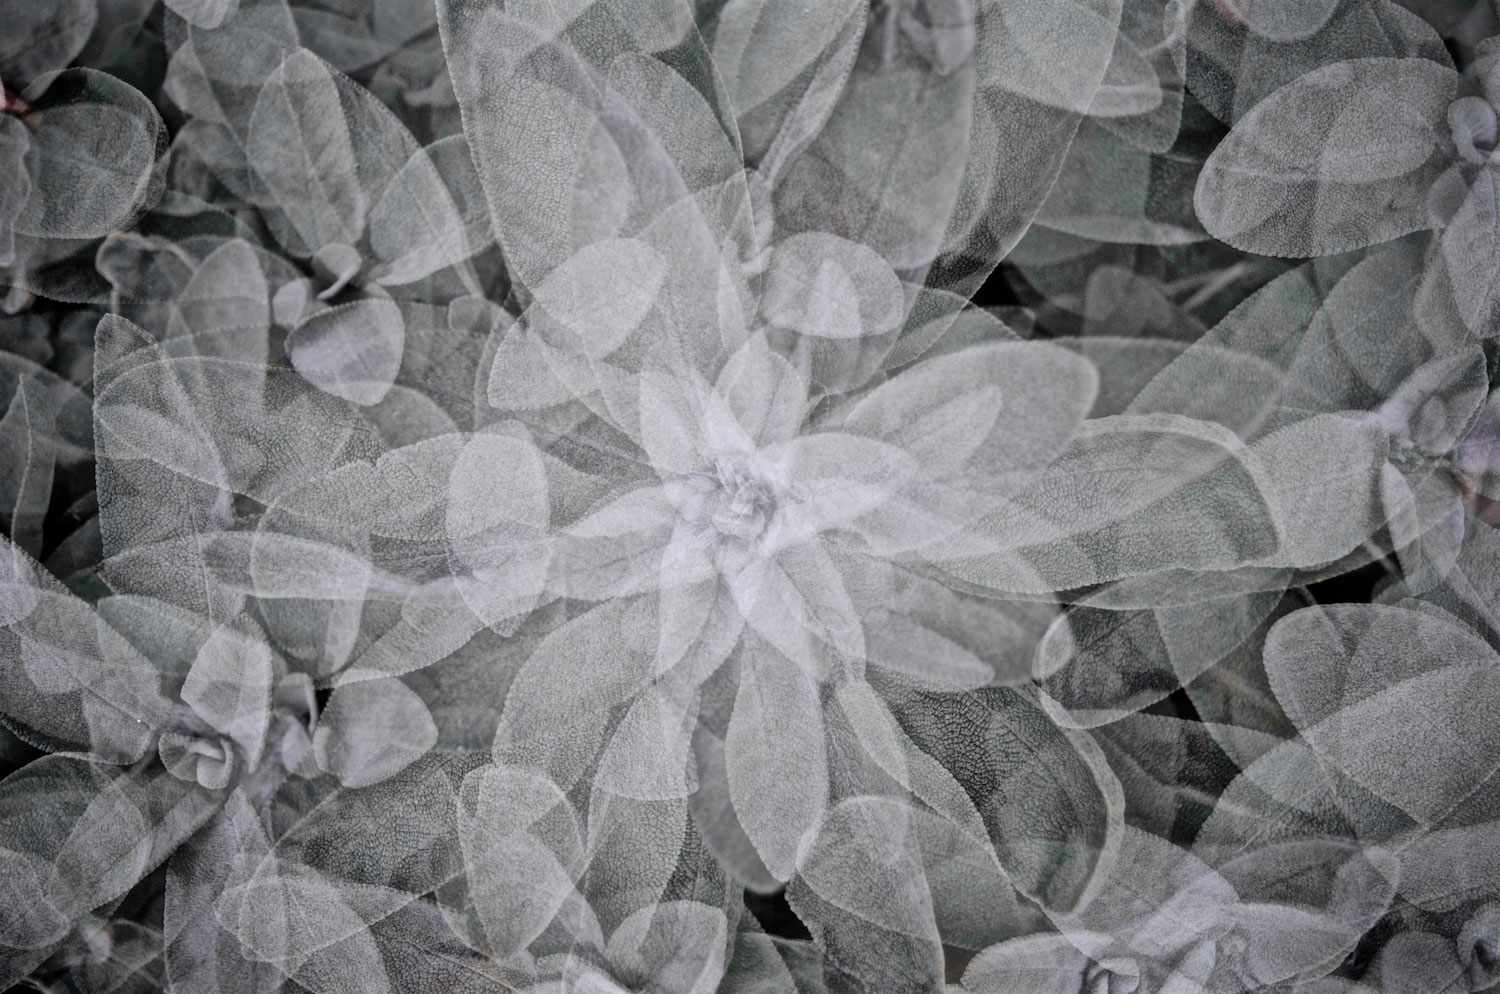 Peter Moritz, moritzform, photography, nature, leaves, multiple exposure